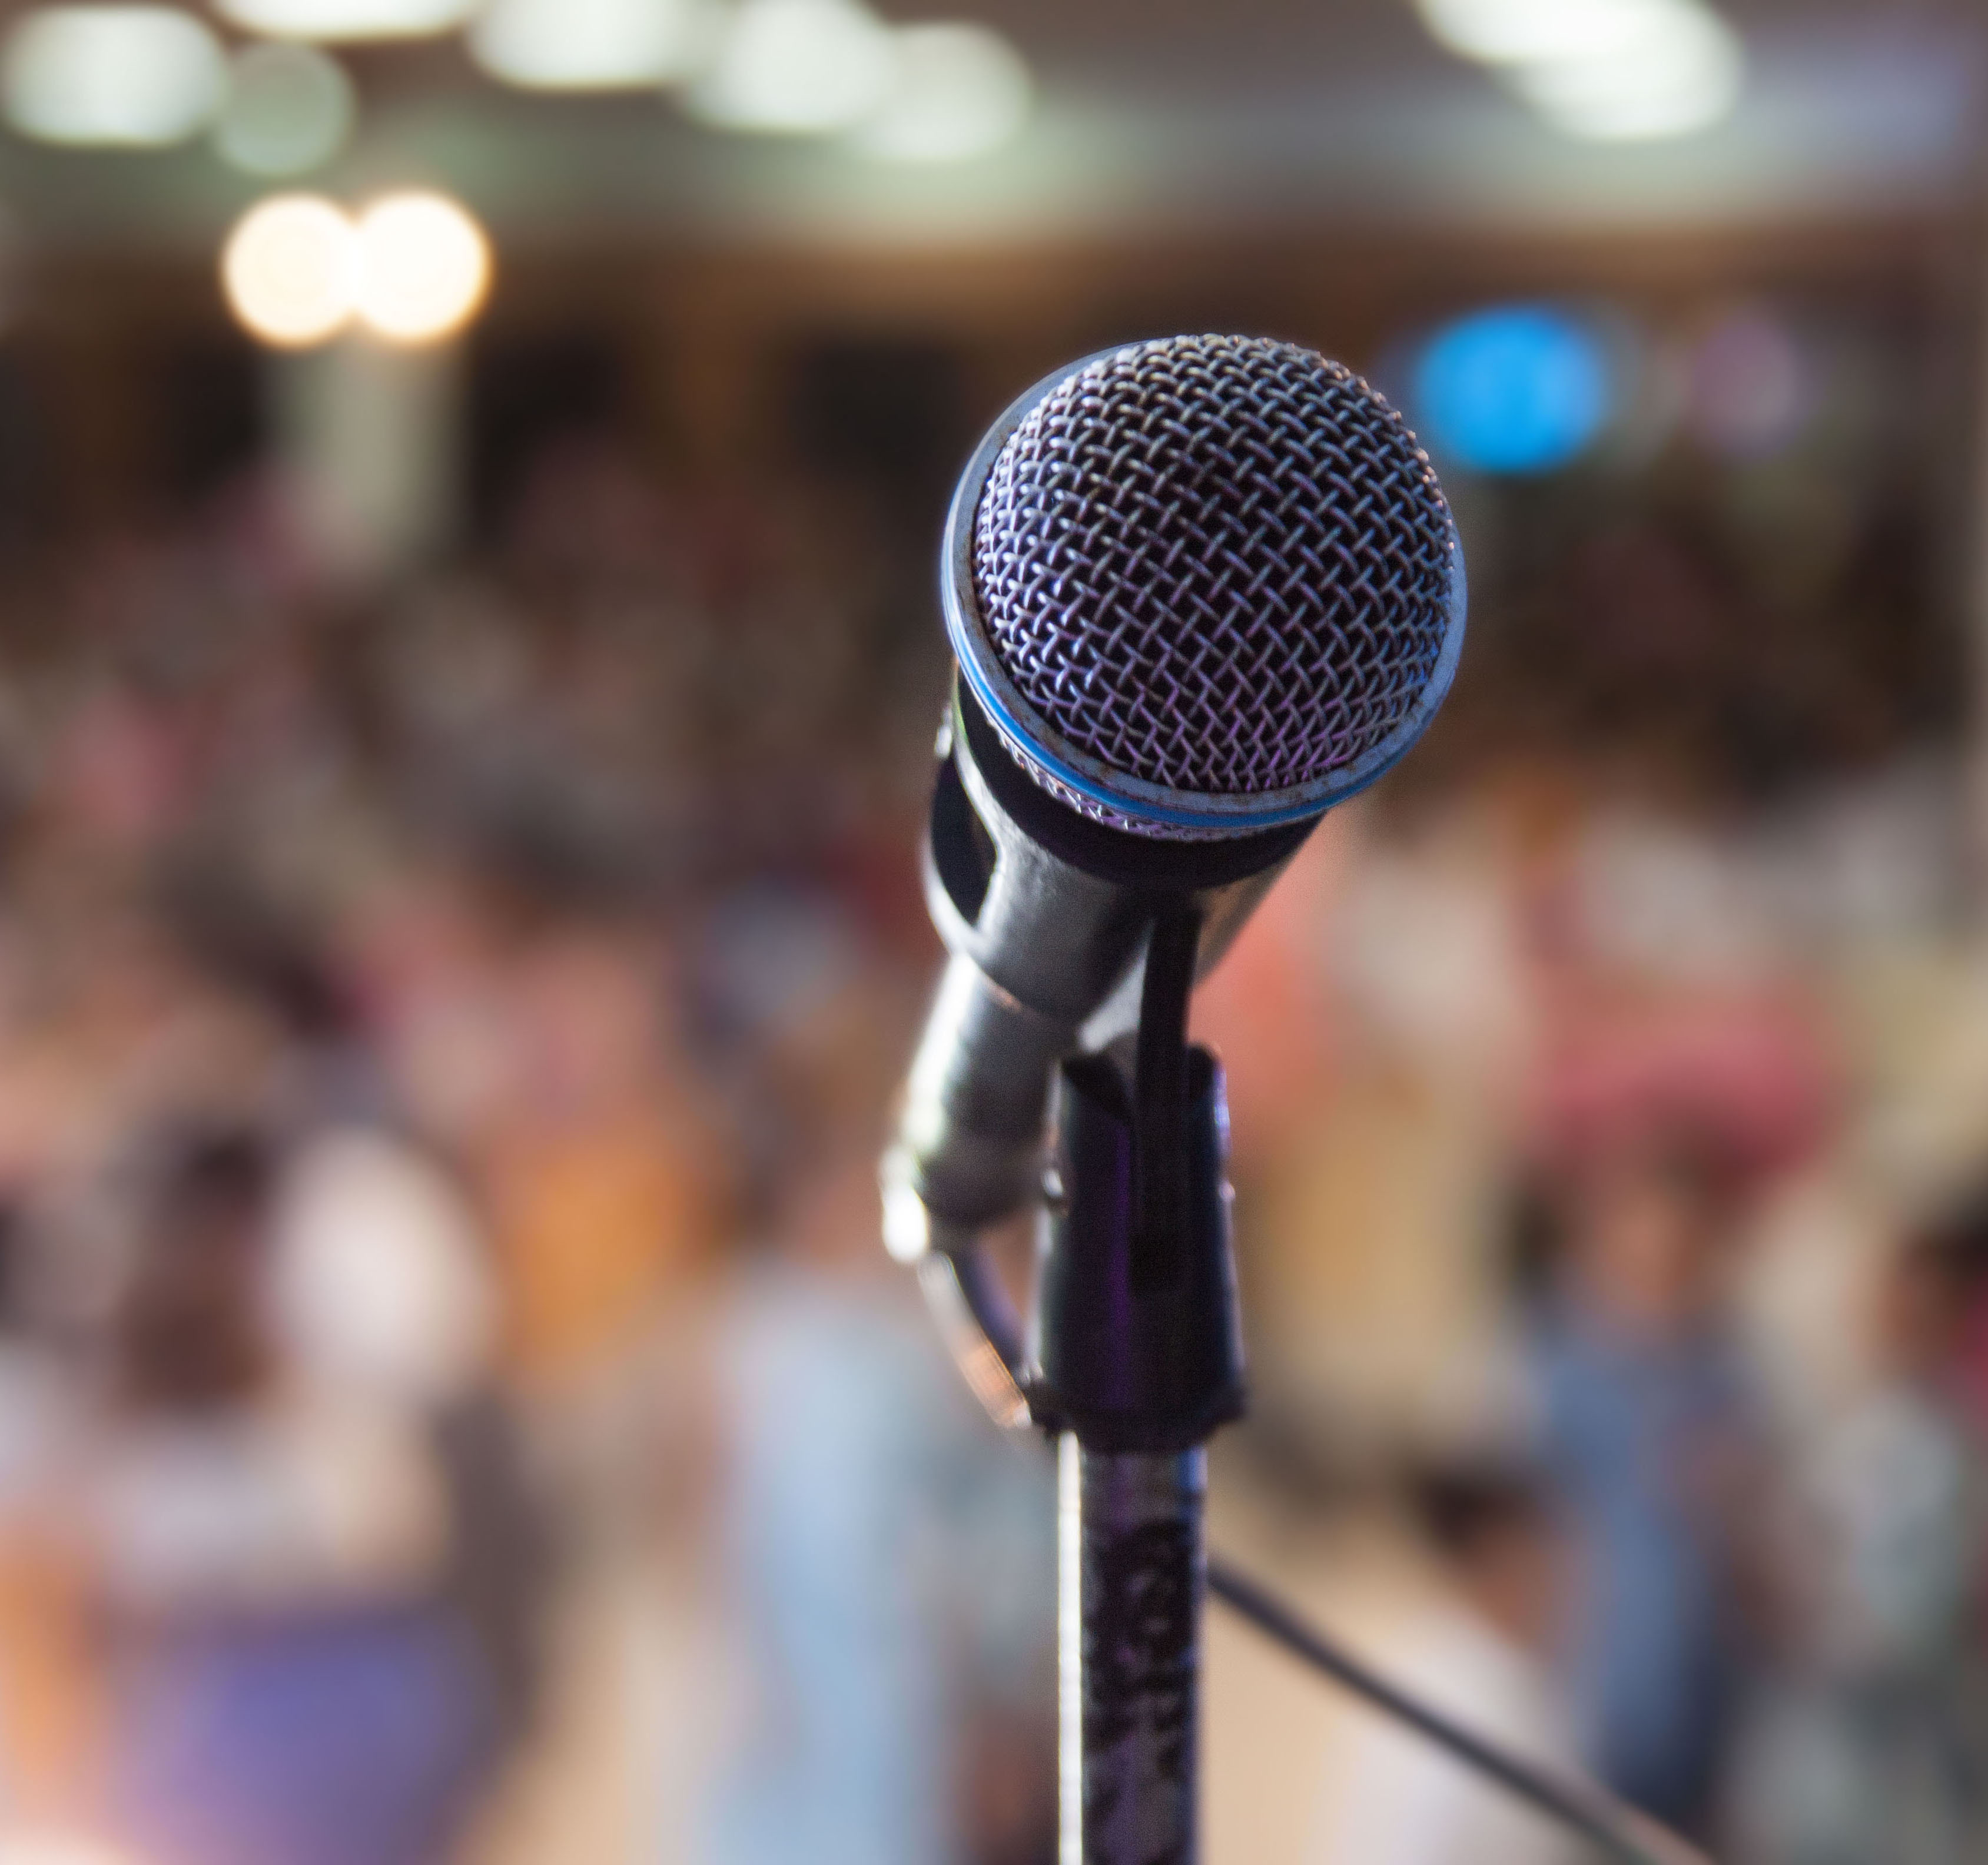 solo microphone in front of a blurred out crowd